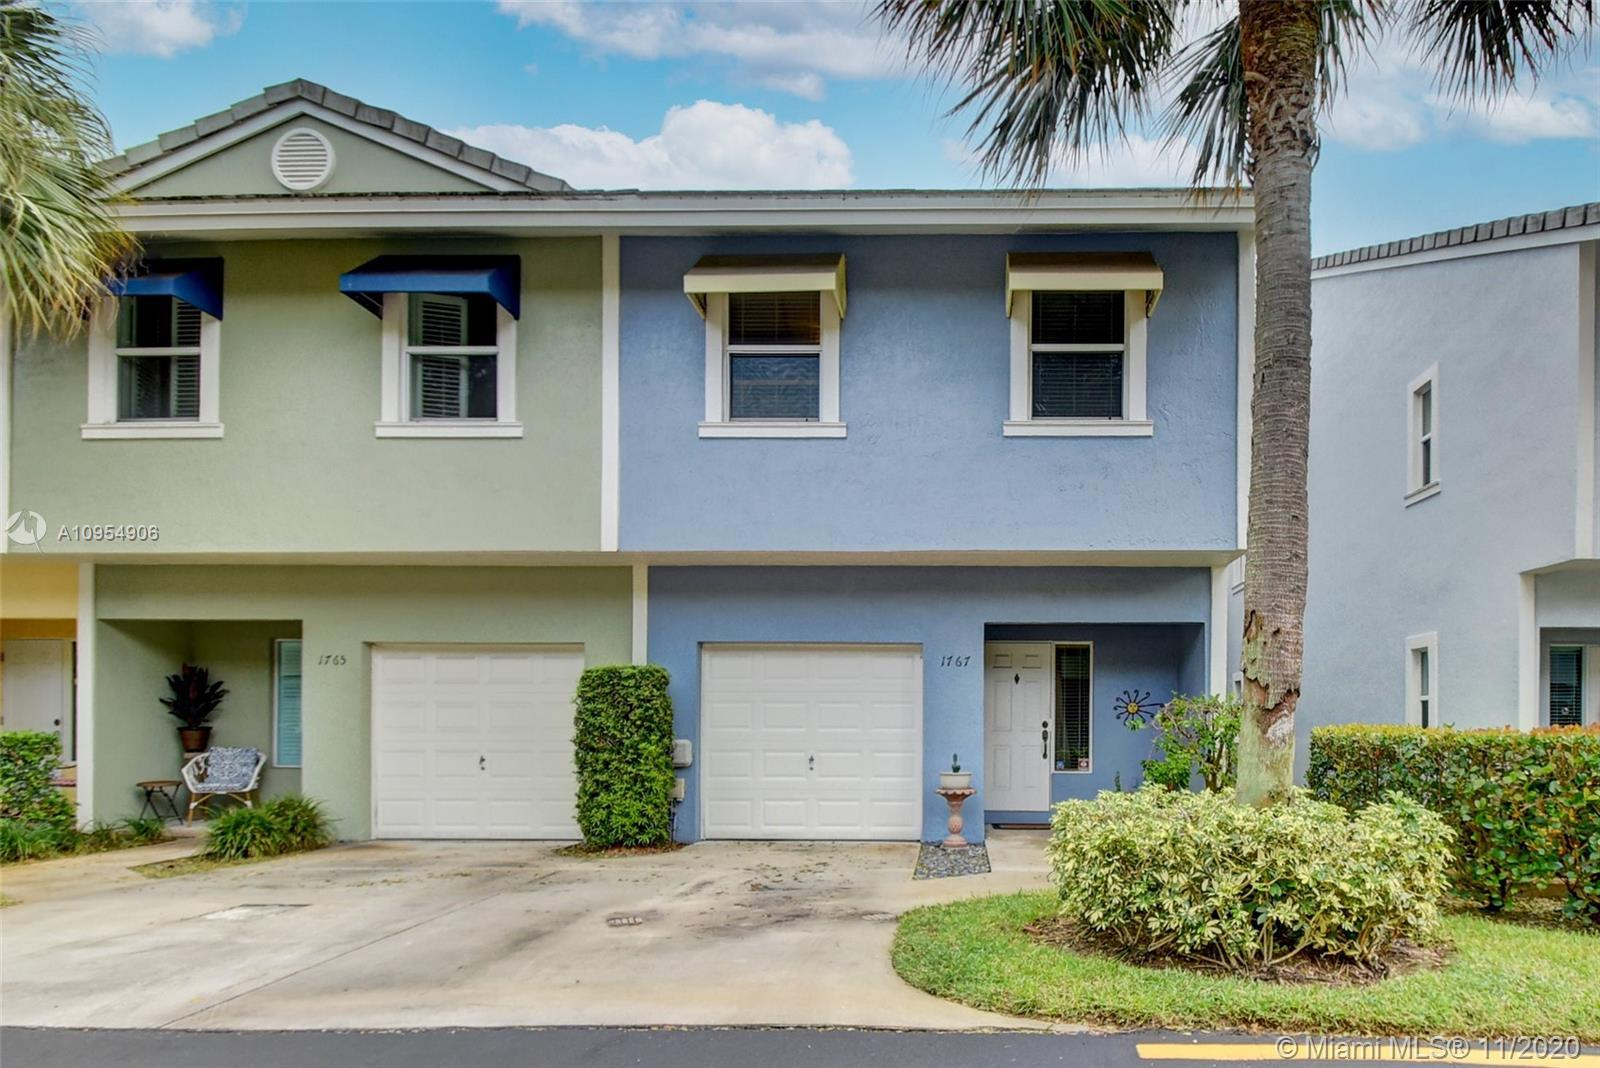 Upgraded 3 bedroom/ 2.5 bathroom  with one car garage in East Fort Lauderdale walking distance to th